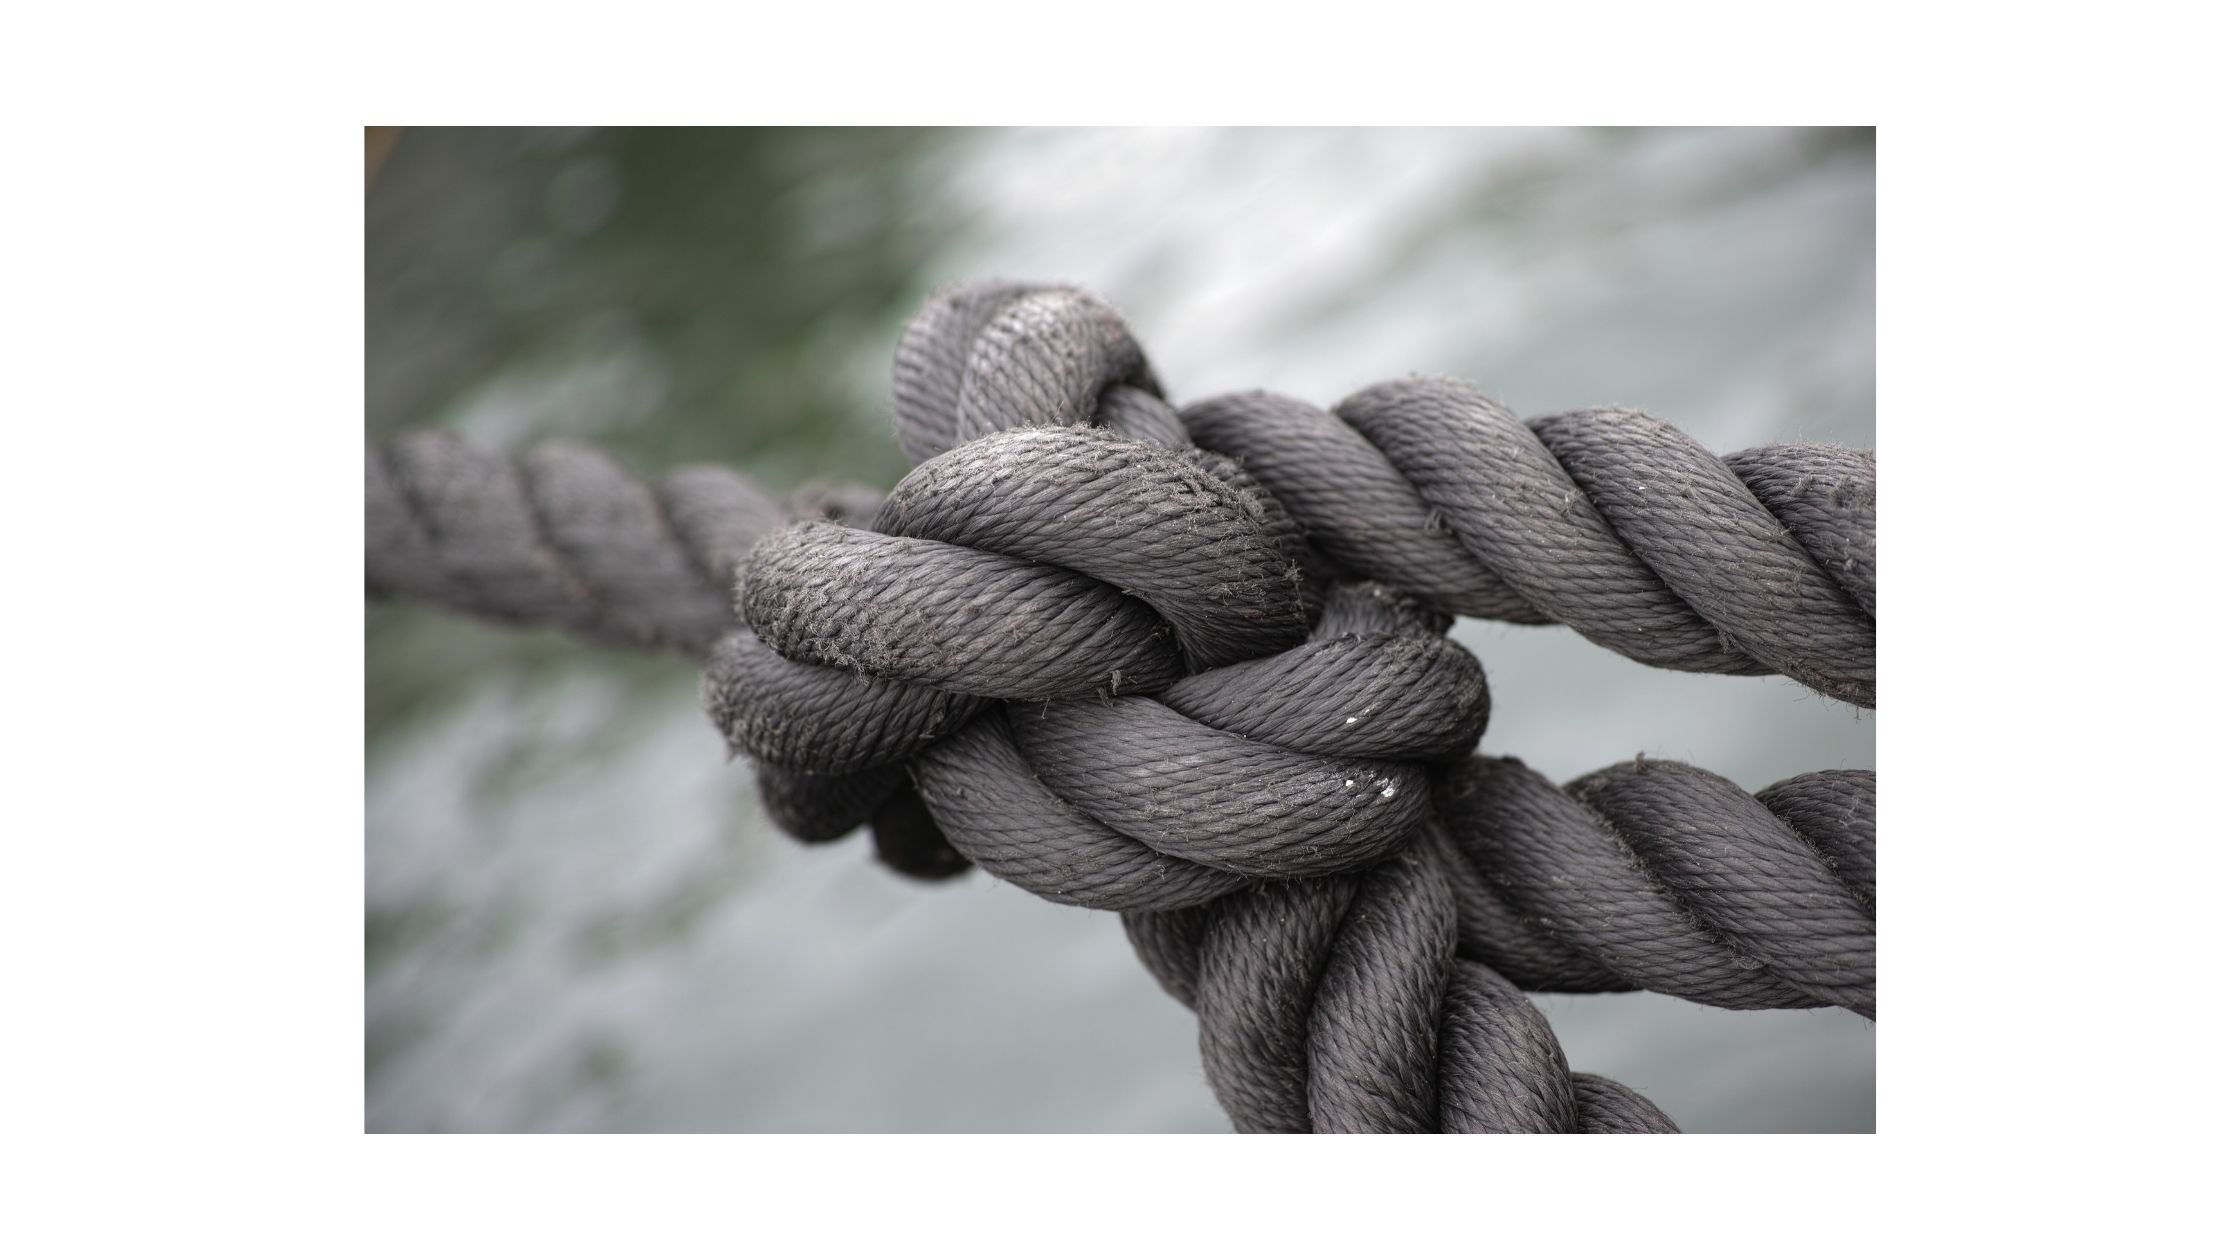 Worry knot. Made of four ropes coming together. Four causes of my worries